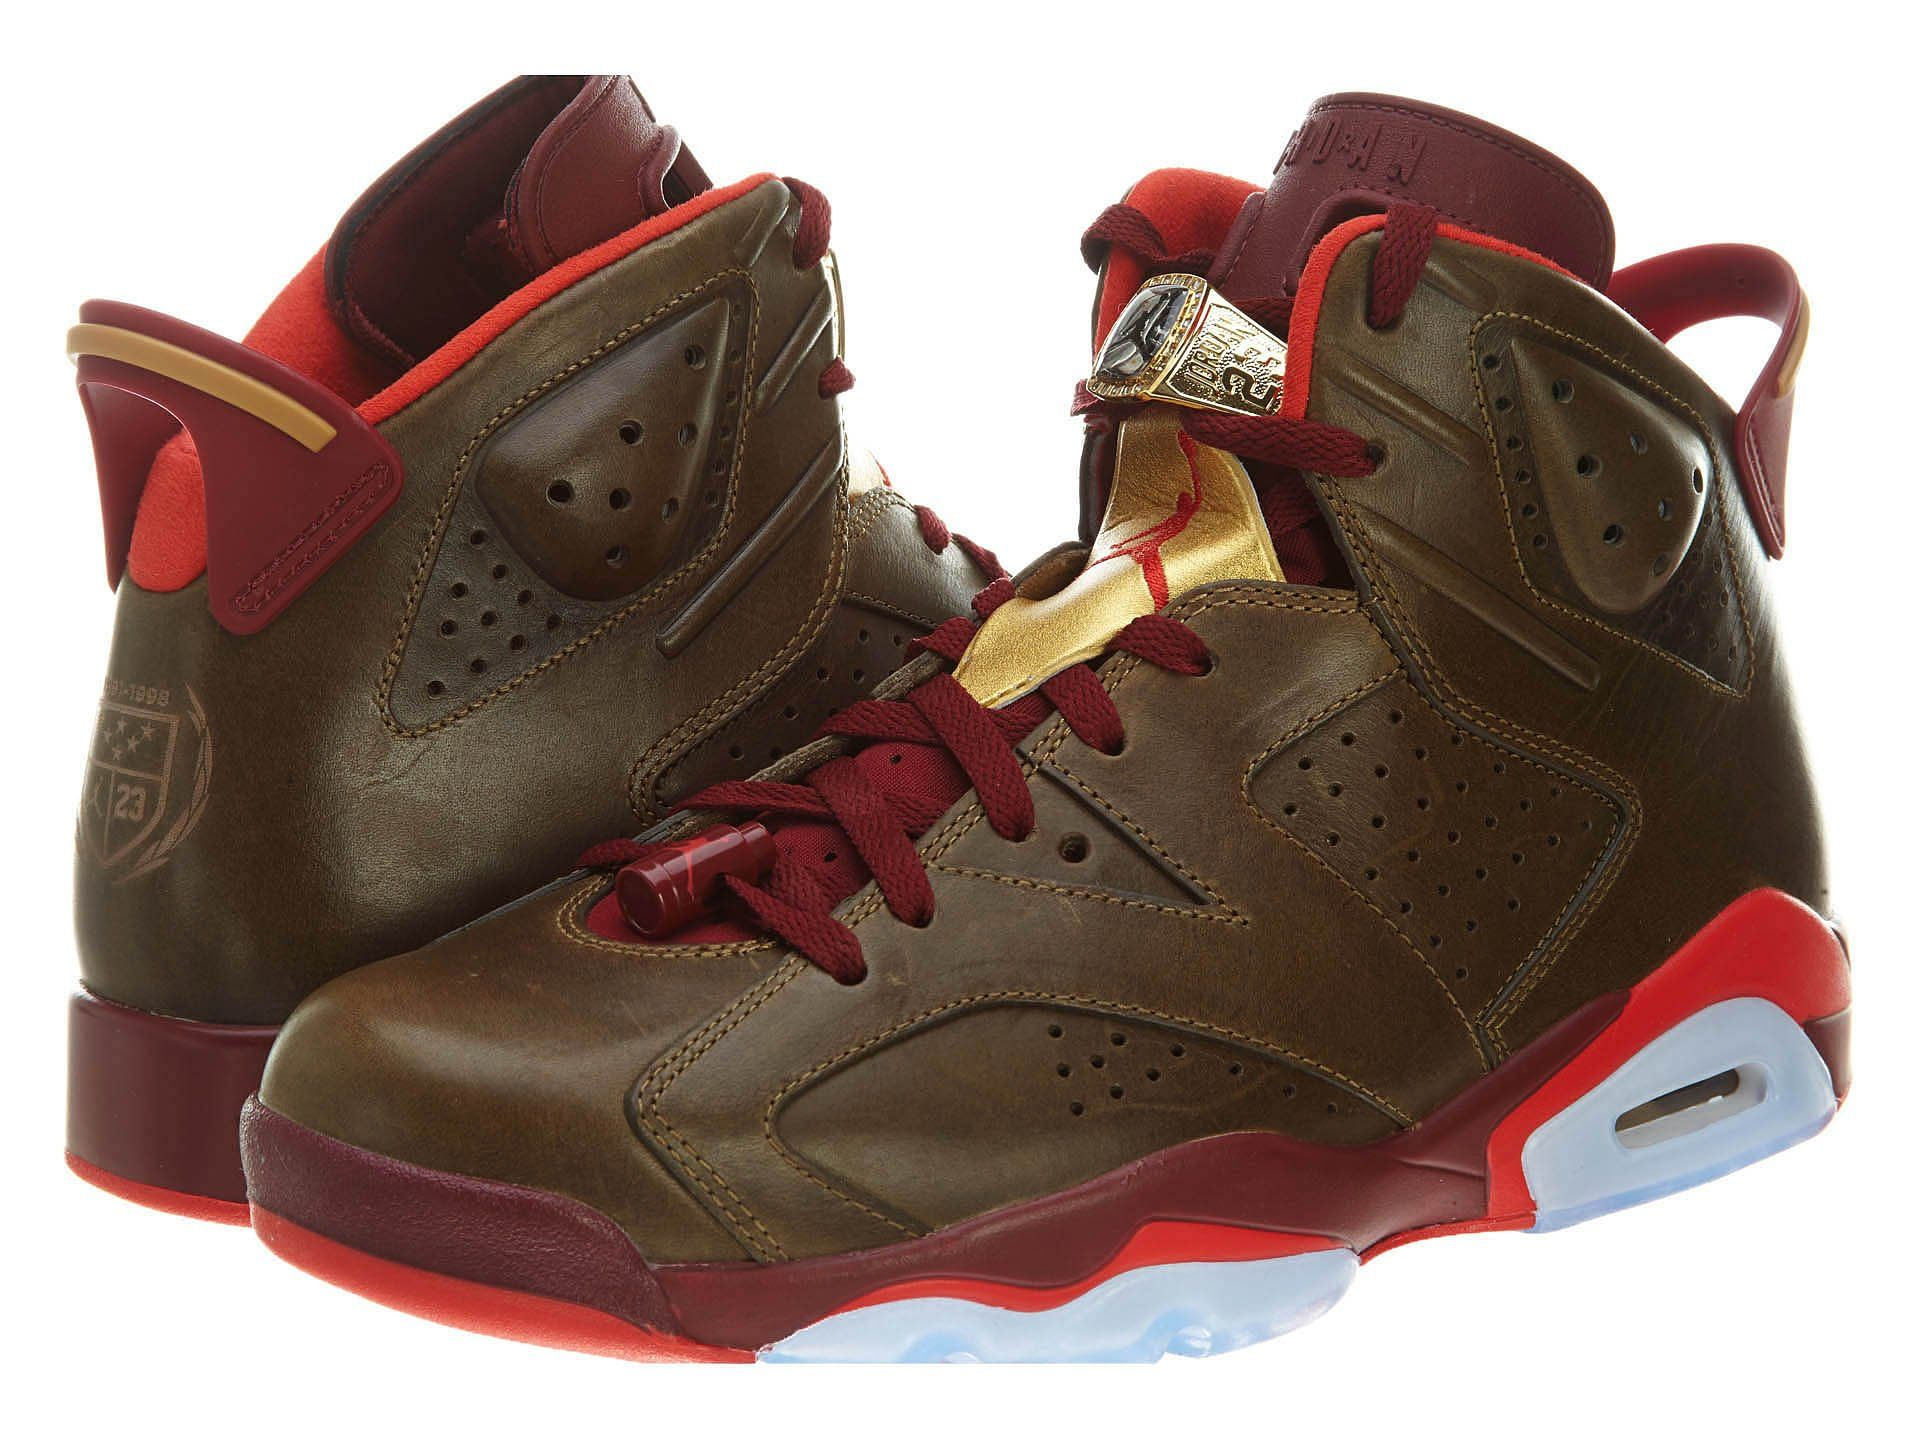 Amazon.com: Jordan Mens Air Jordan 6 Retro Leather basketball-shoes: Shoes